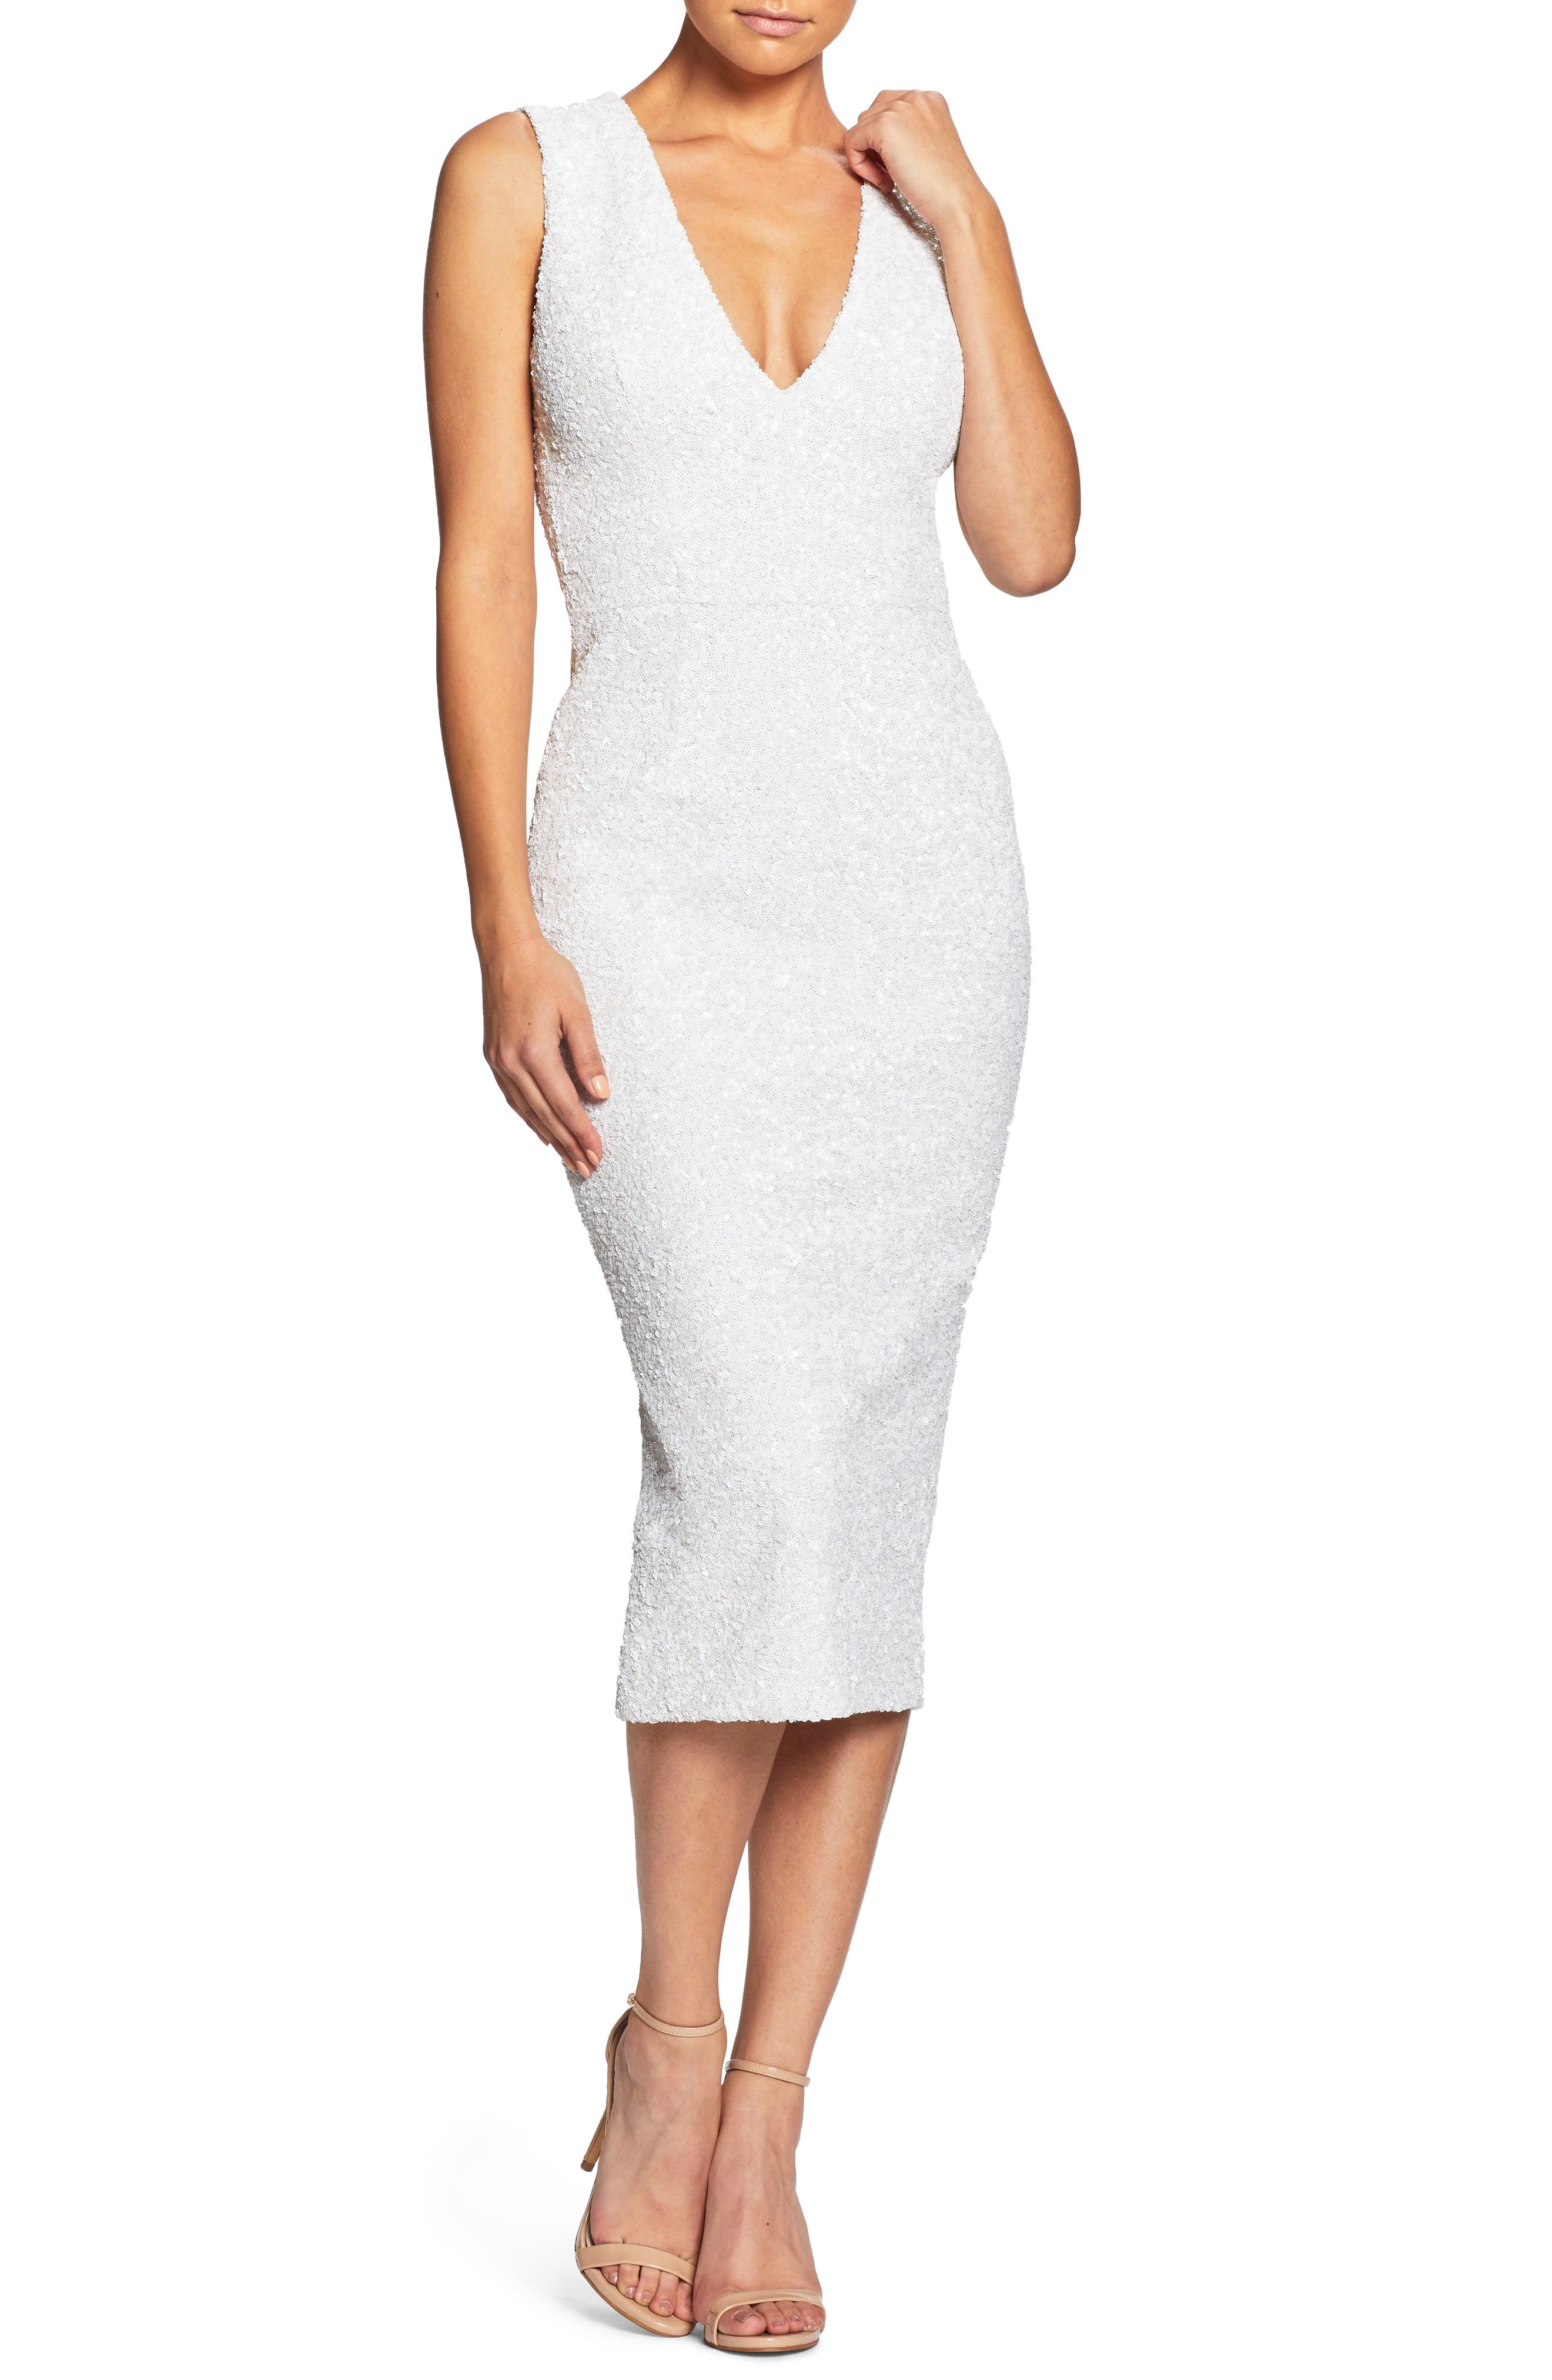 White Cocktail Party Dresses